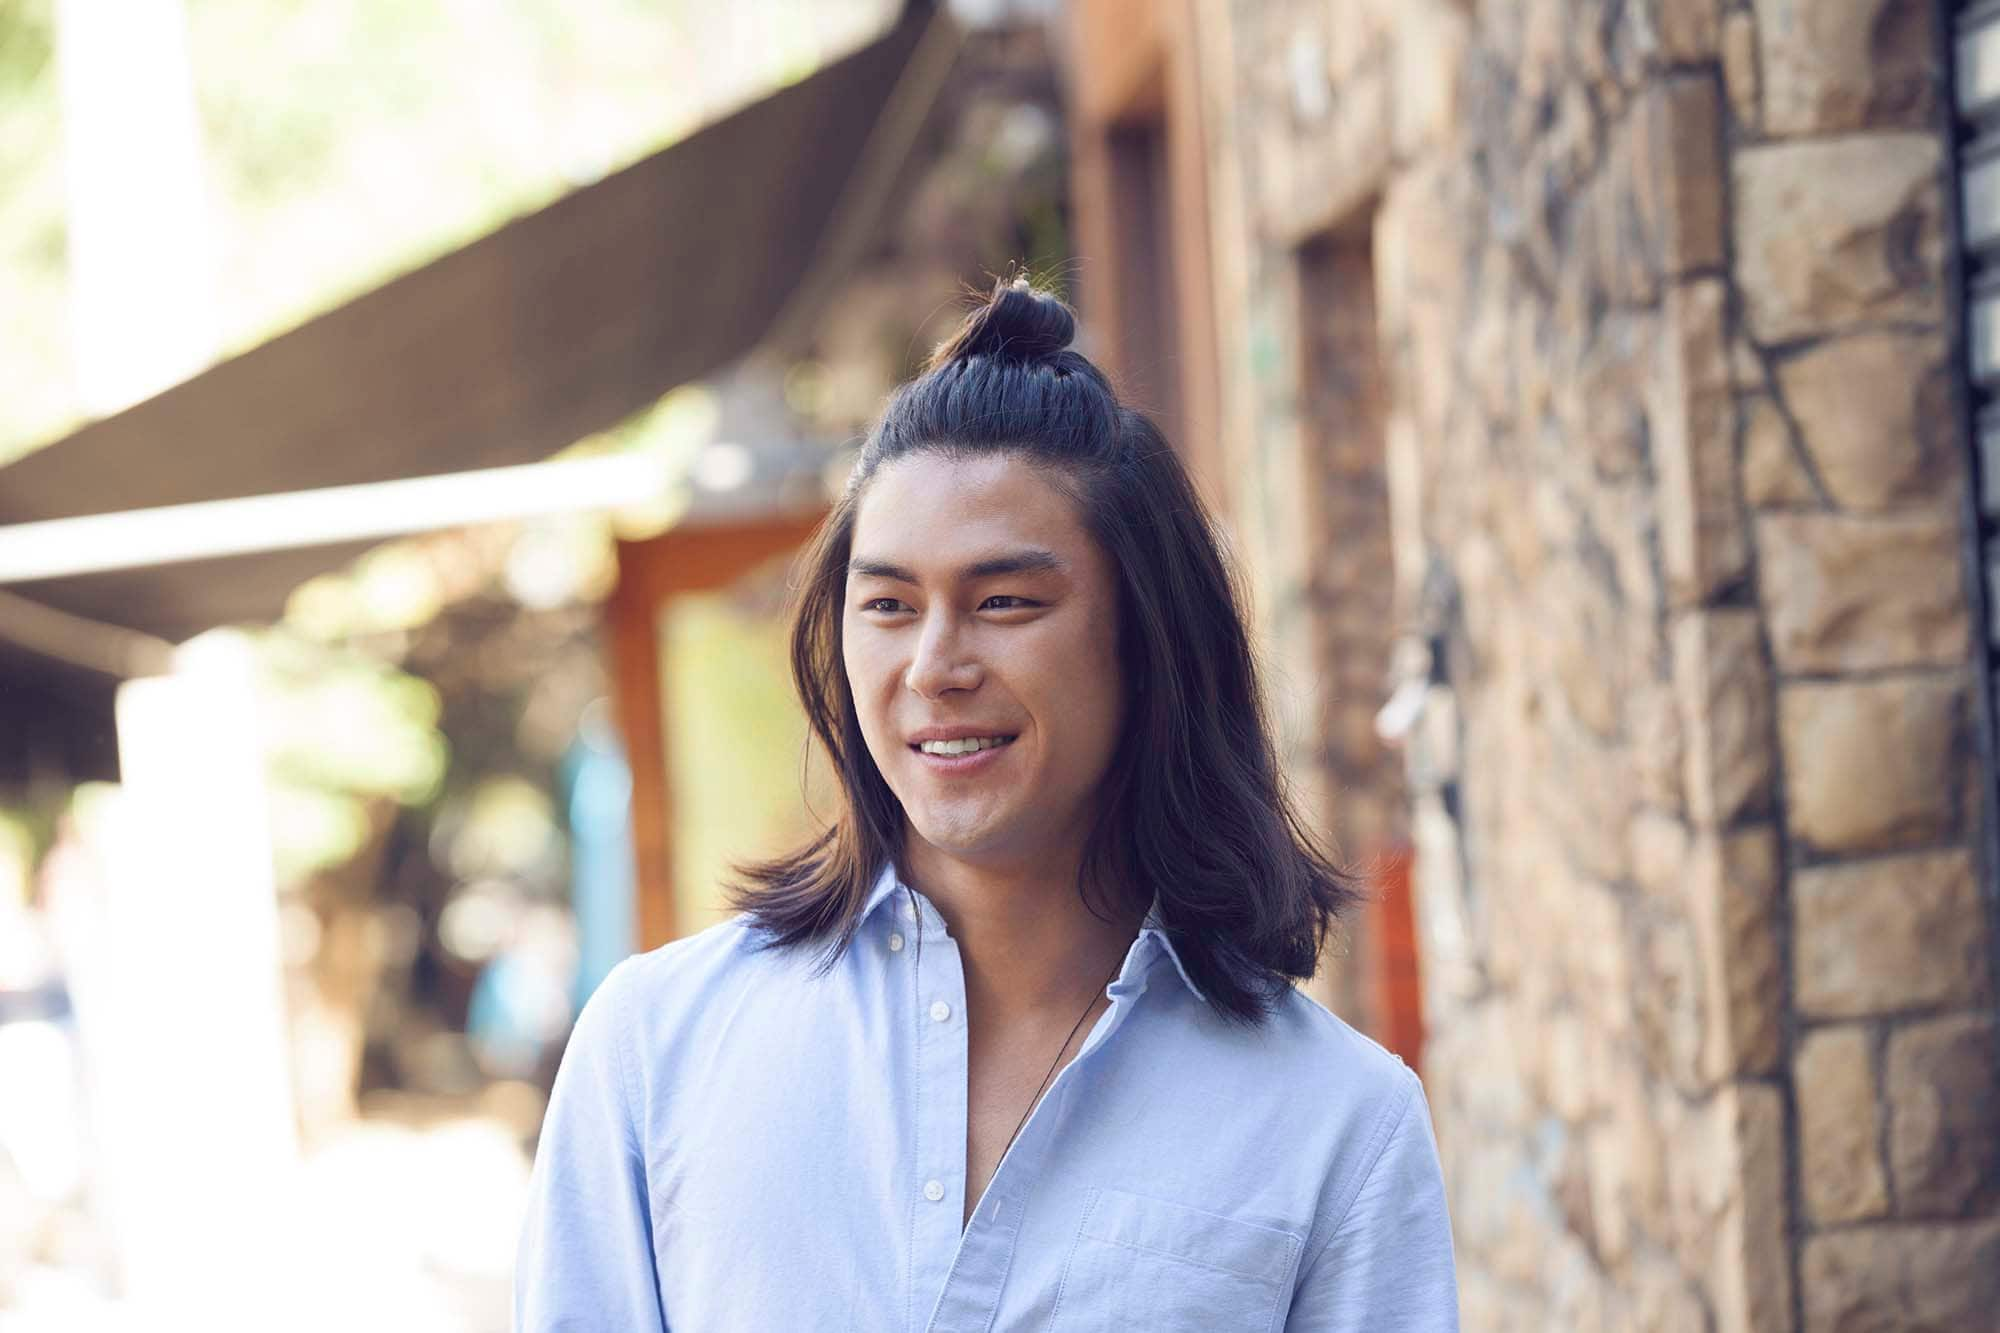 Asian men hairstyles: The half mun